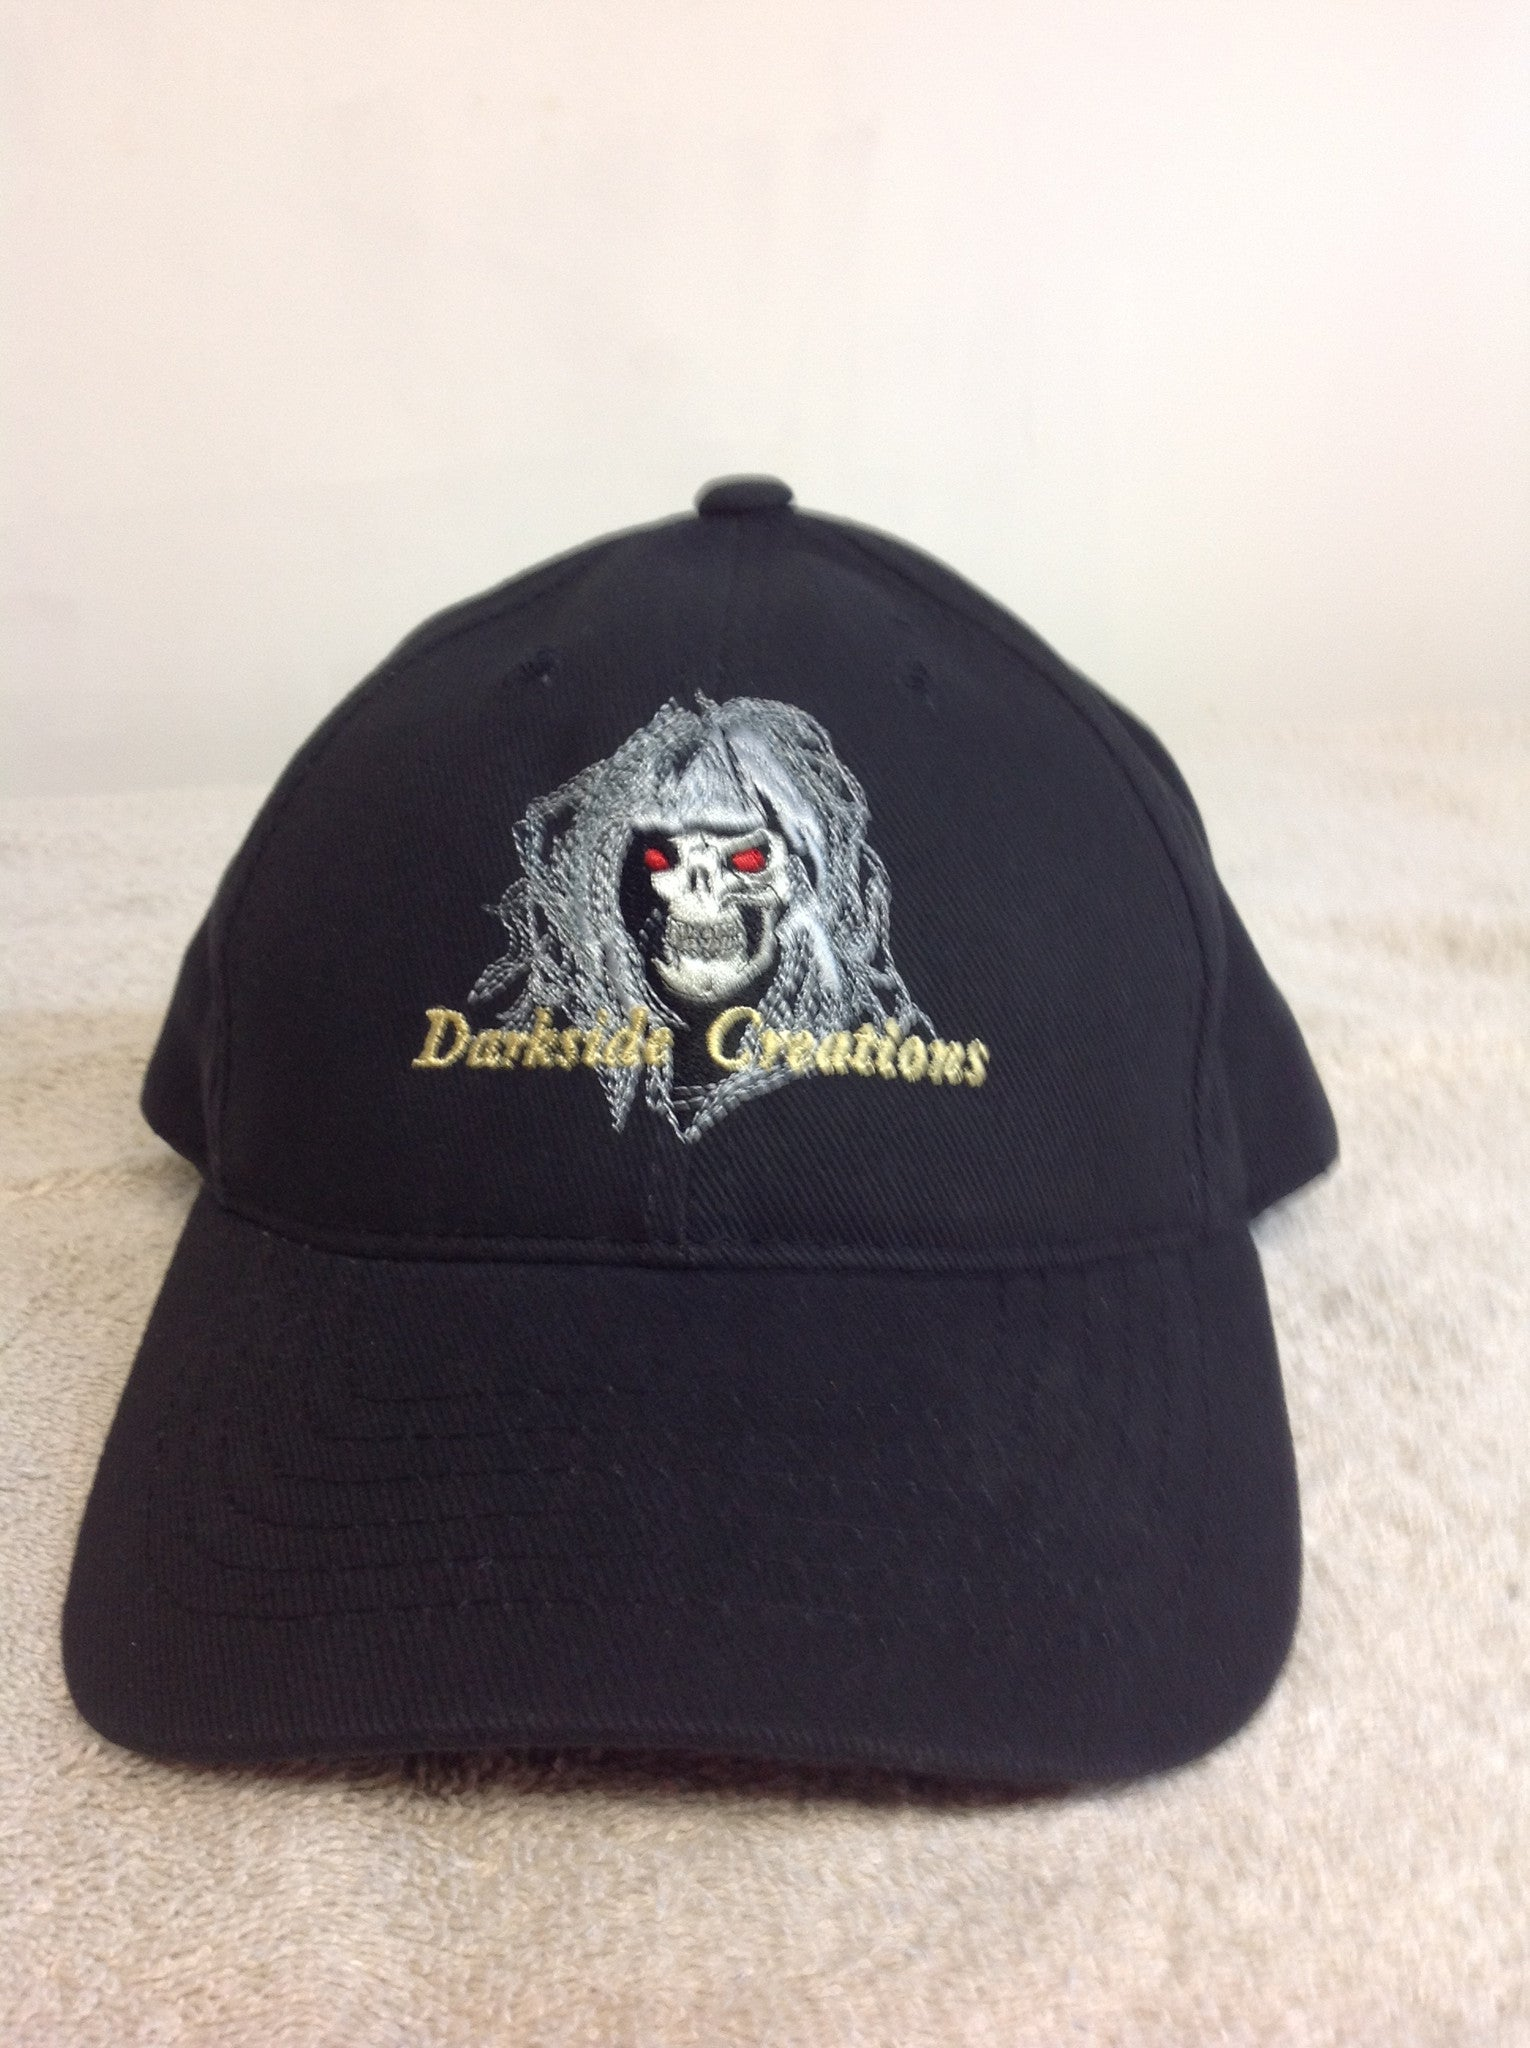 229194ca Adjustable Cotton Ball Cap with Embroidered DSV Logo - DSVCreations